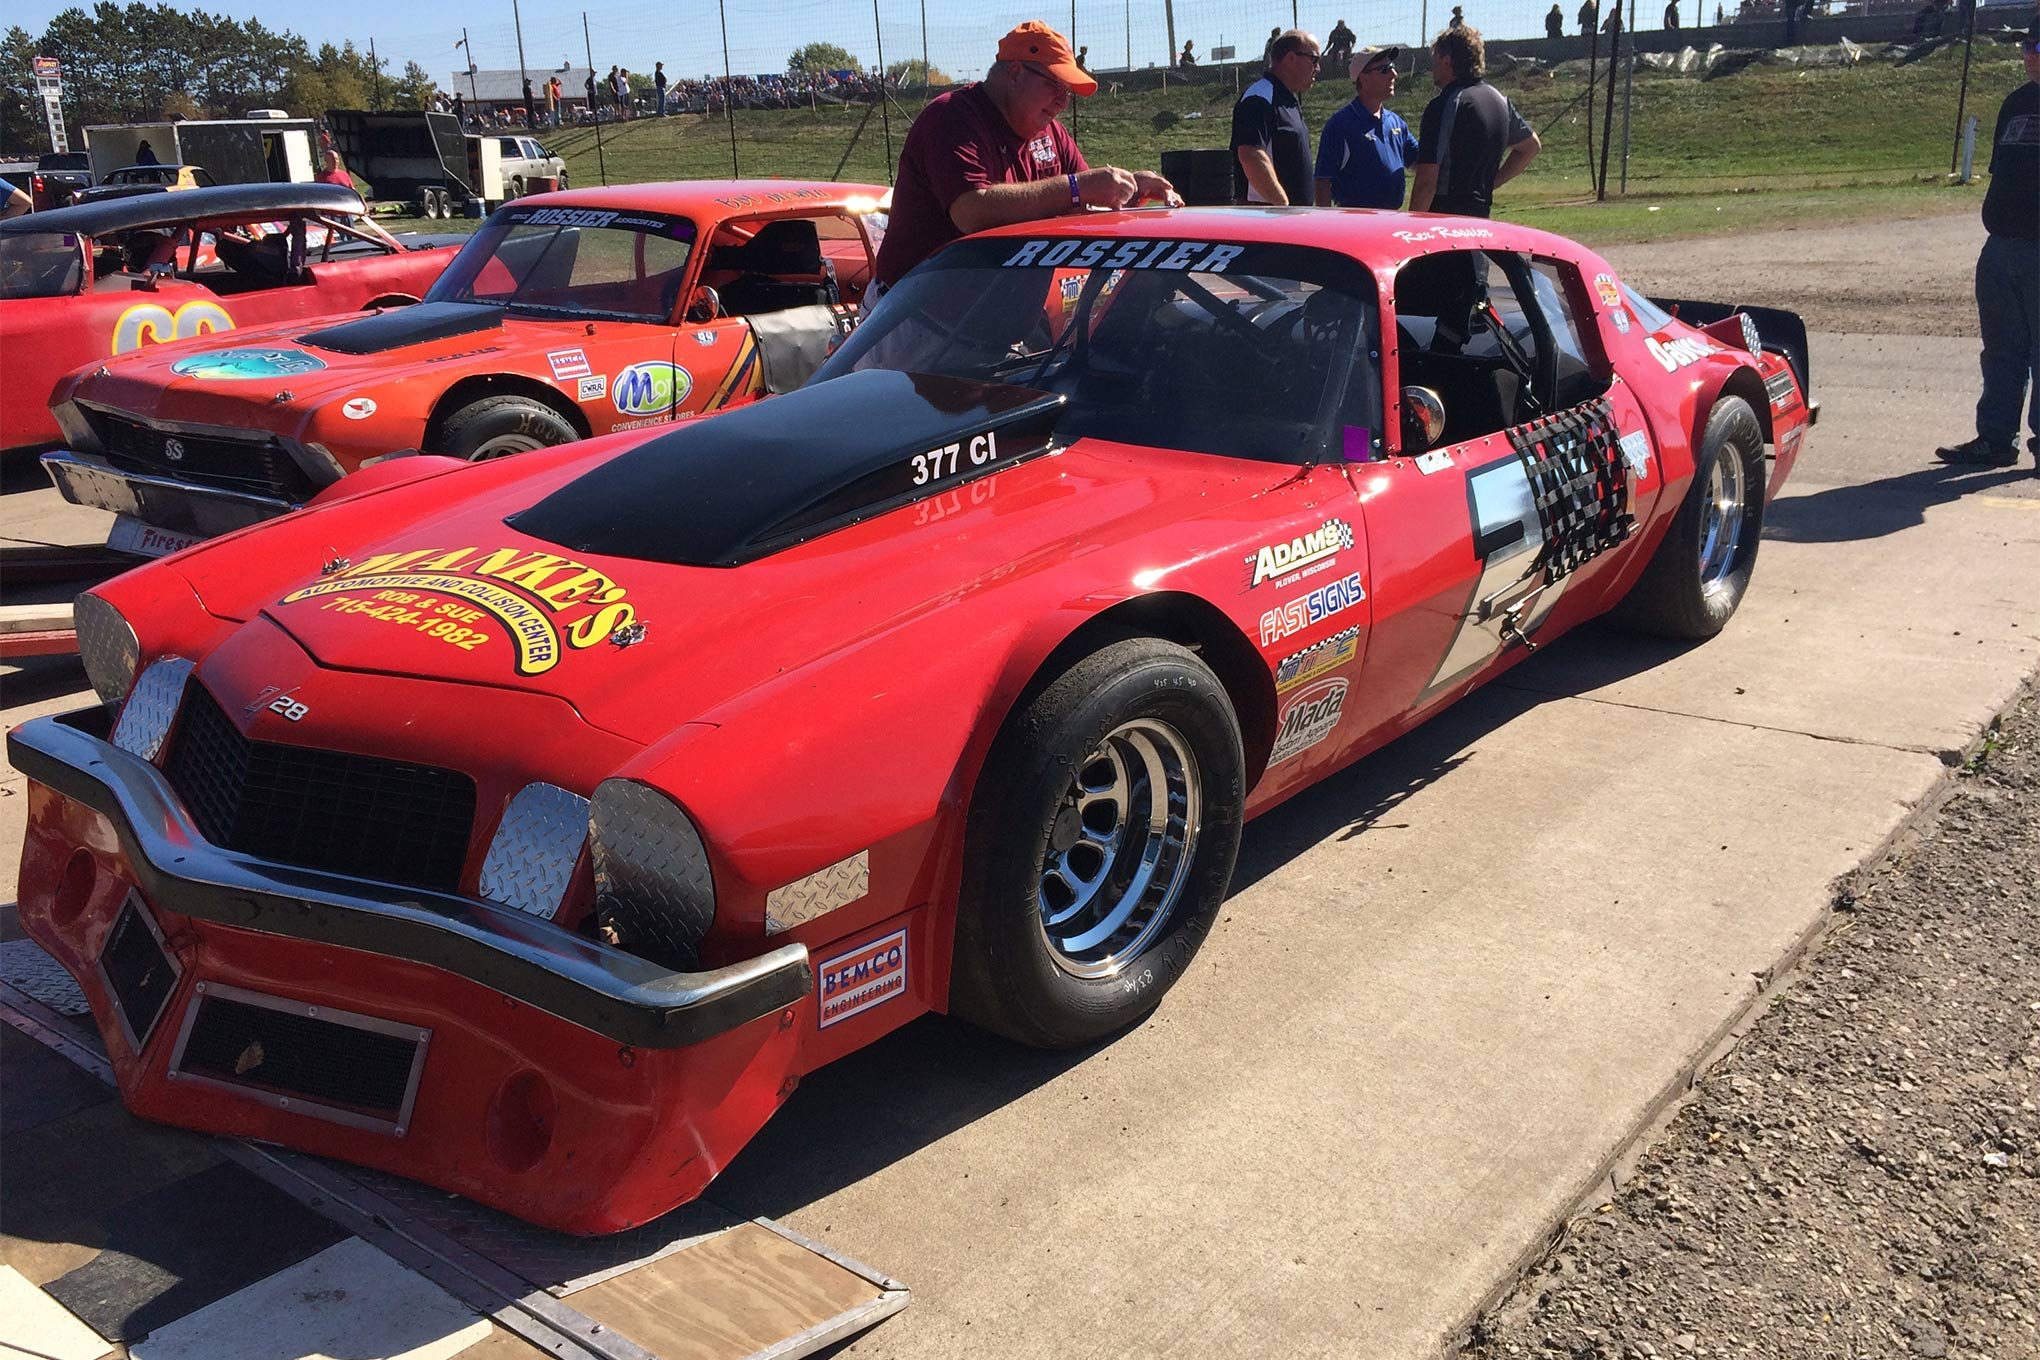 Rex Rossier's BEMCO Chassis began life as a Mustang. After Bobby Allison wrecked it at Elko Speedway in Minnesota, it took on a new life as a Camaro.